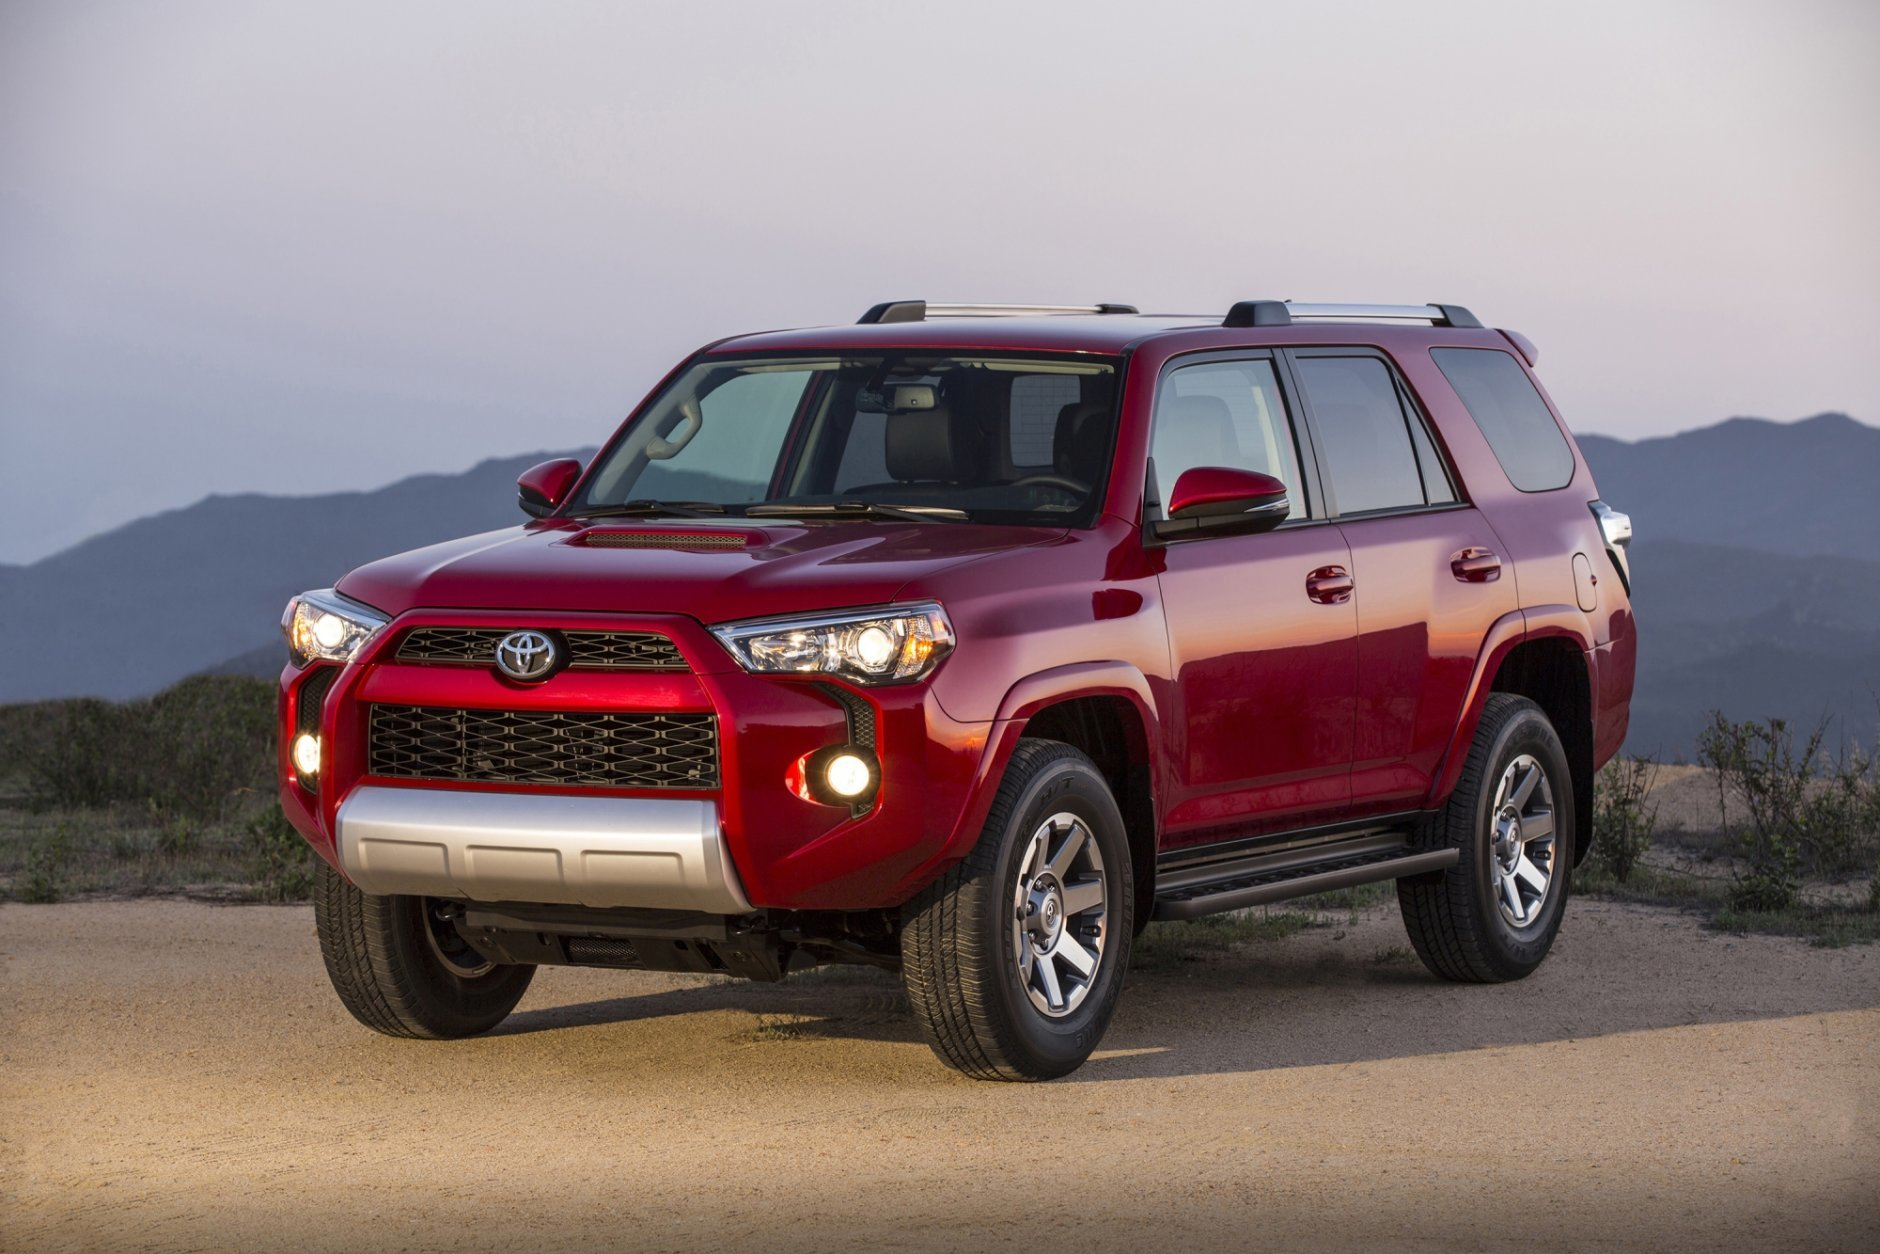 This undated photo provided by Toyota shows the Toyota 4Runner, a rugged SUV that makes mincemeat out of challenging offroad conditions. (Dewhurst Photography/Toyota via AP)